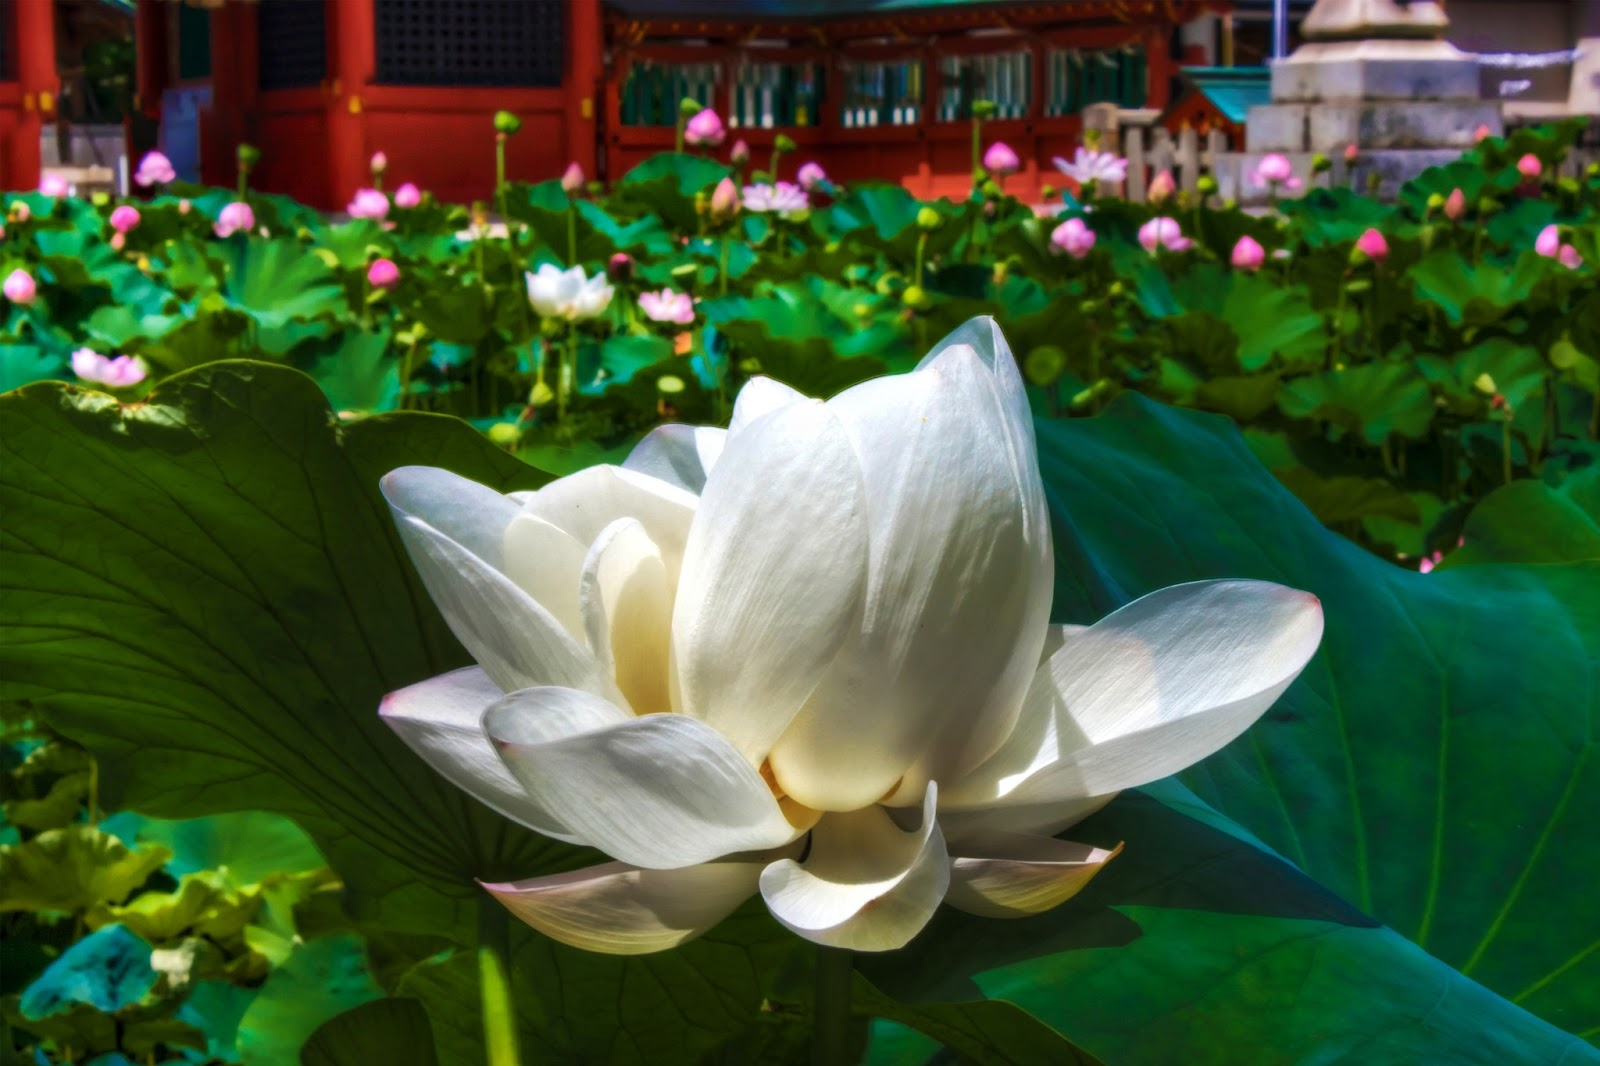 Lotus Flower Hd Wallpapers Hd Wallpapers High Definition Free